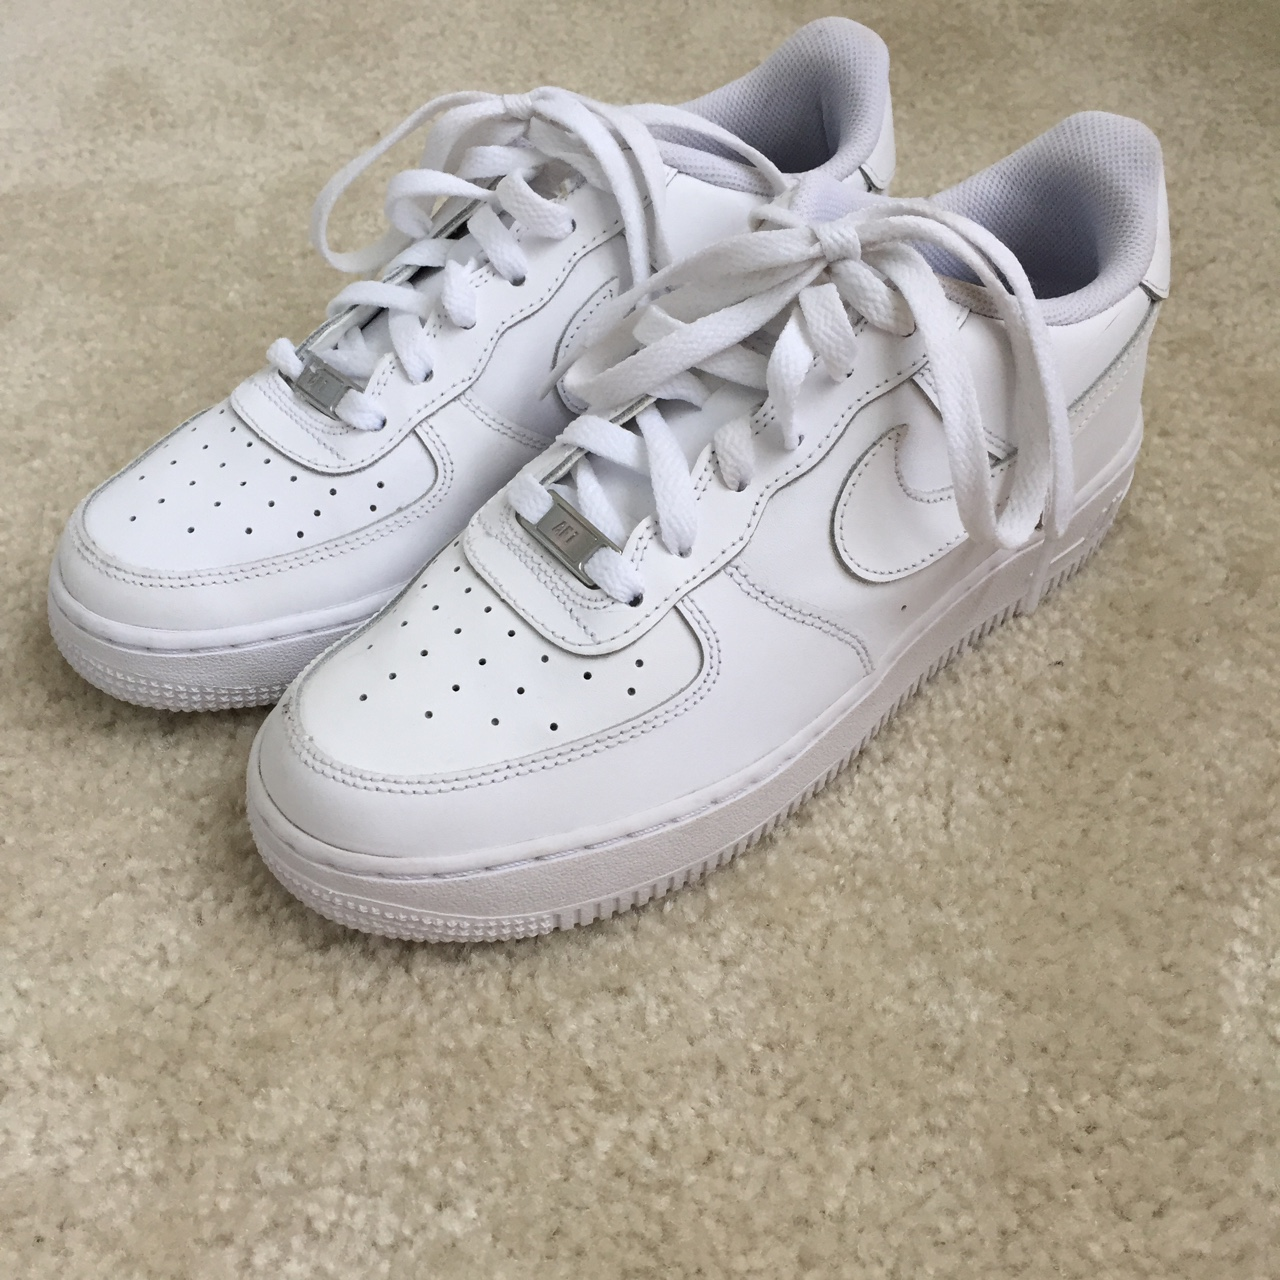 Nike Air Force 1 In Youth Size 7 Which Is A Women S Depop